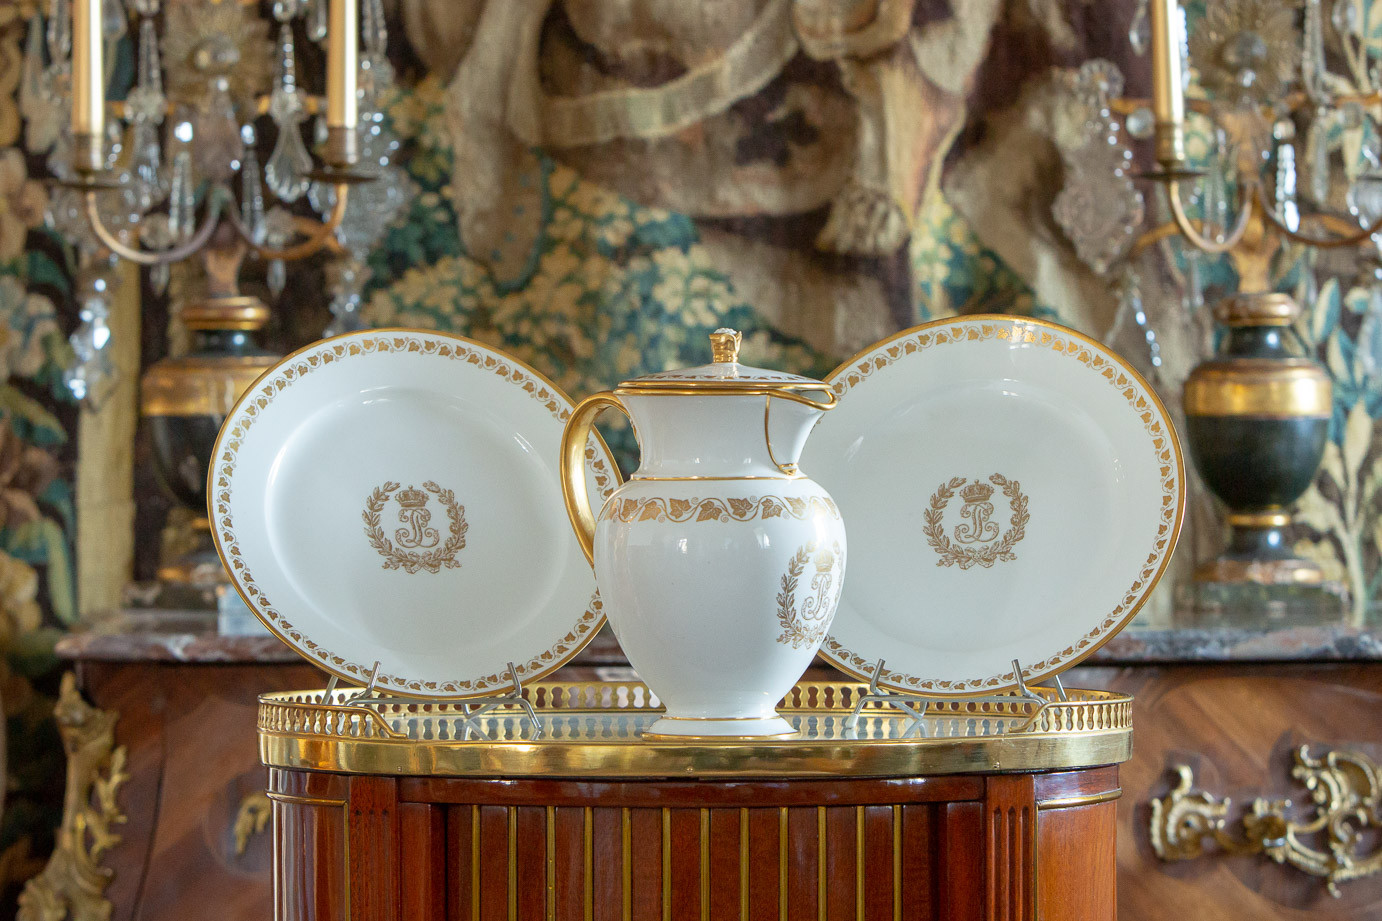 Royal Sevres Manufacture  - All of Louis-Philippe's «Le Service des Princes» at the Tuileries Castle